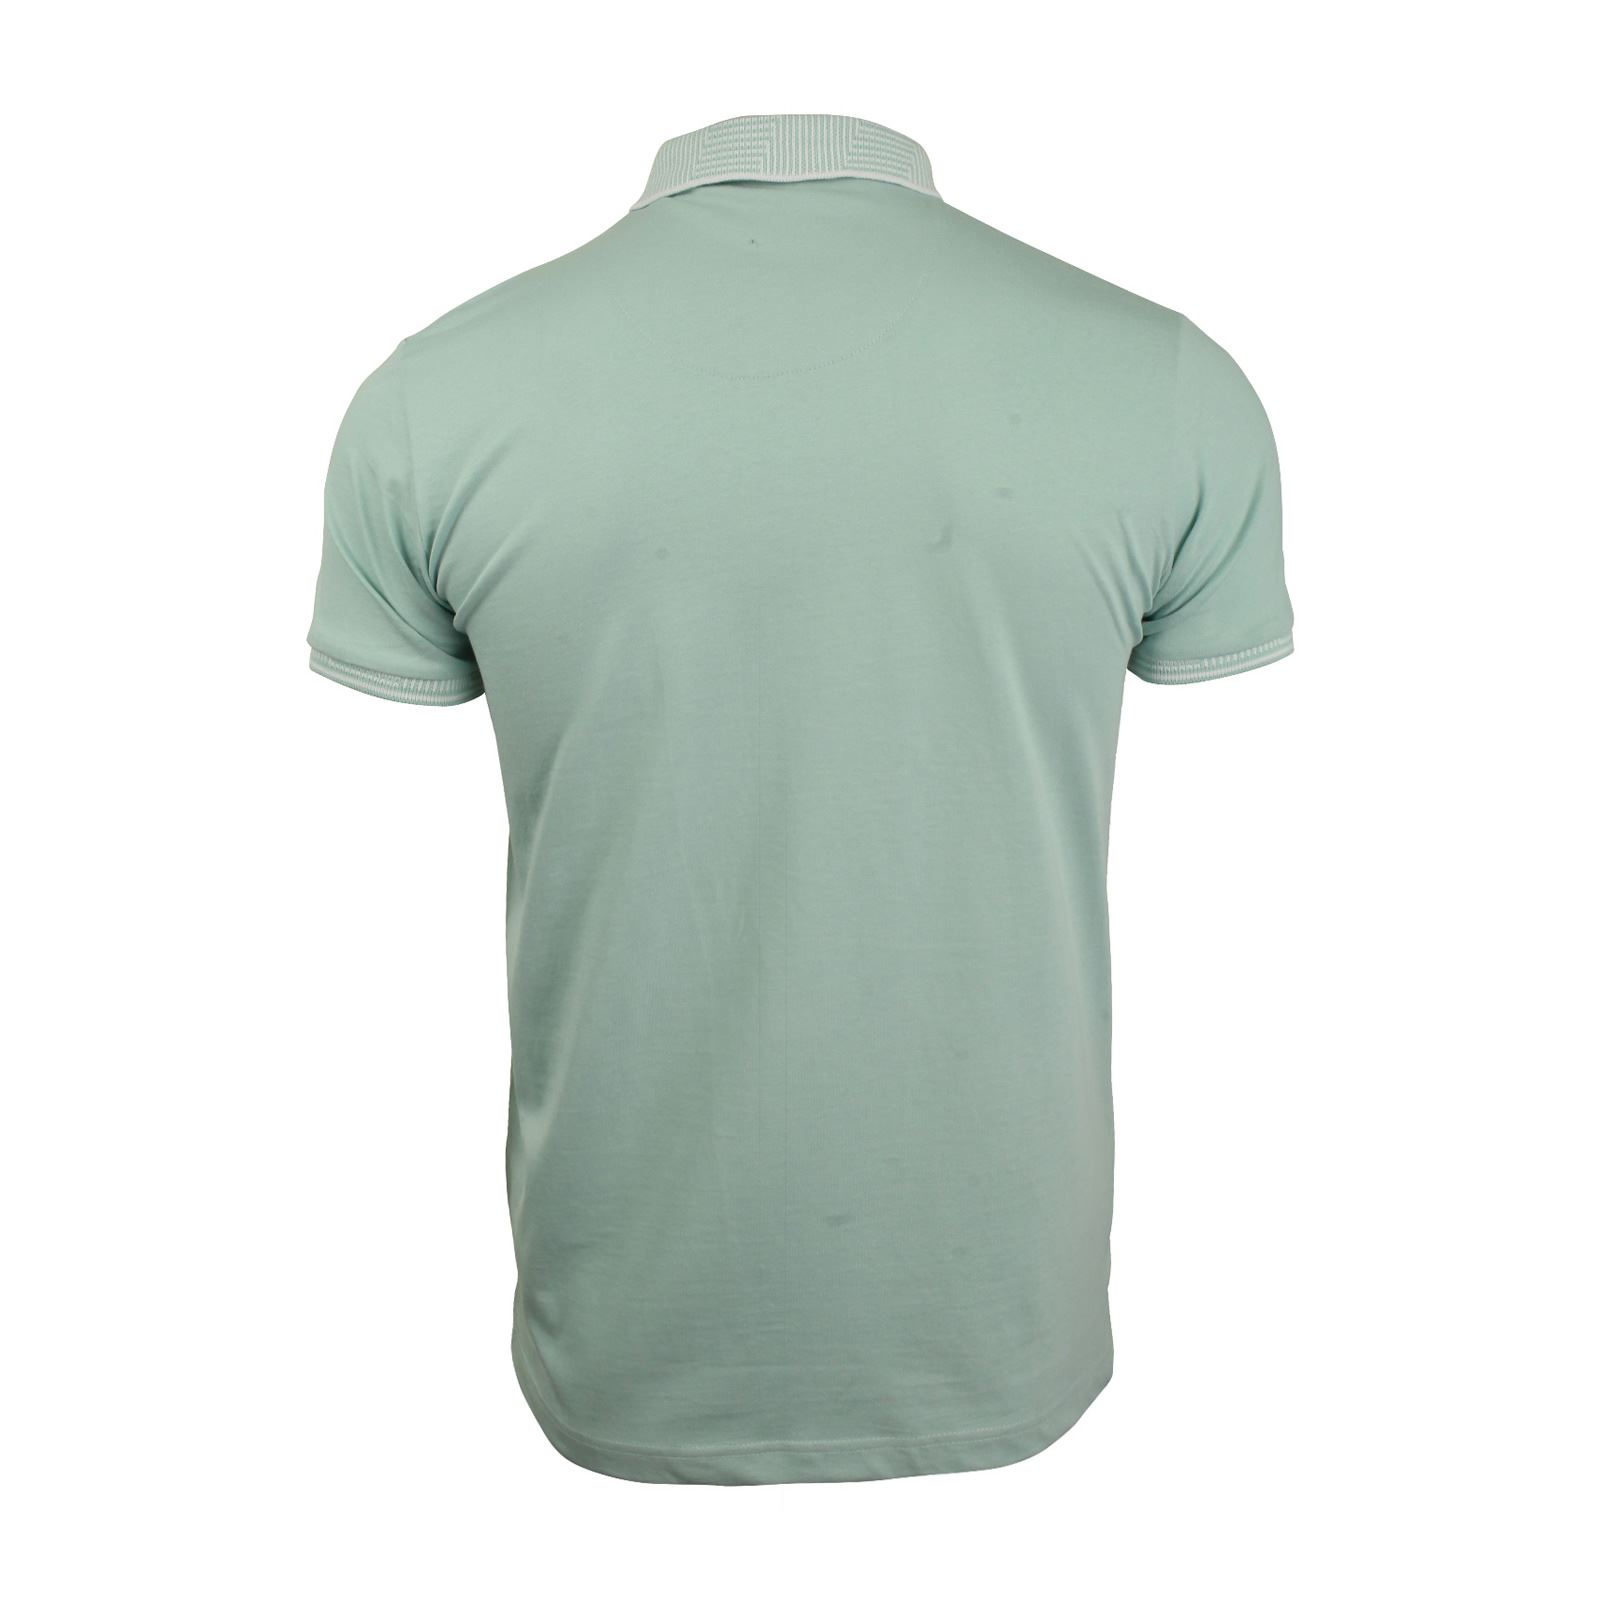 Mens-Polo-T-Shirt-Brave-Soul-Glover-Cotton-Collared-Short-Sleeve-Casual-Top thumbnail 11